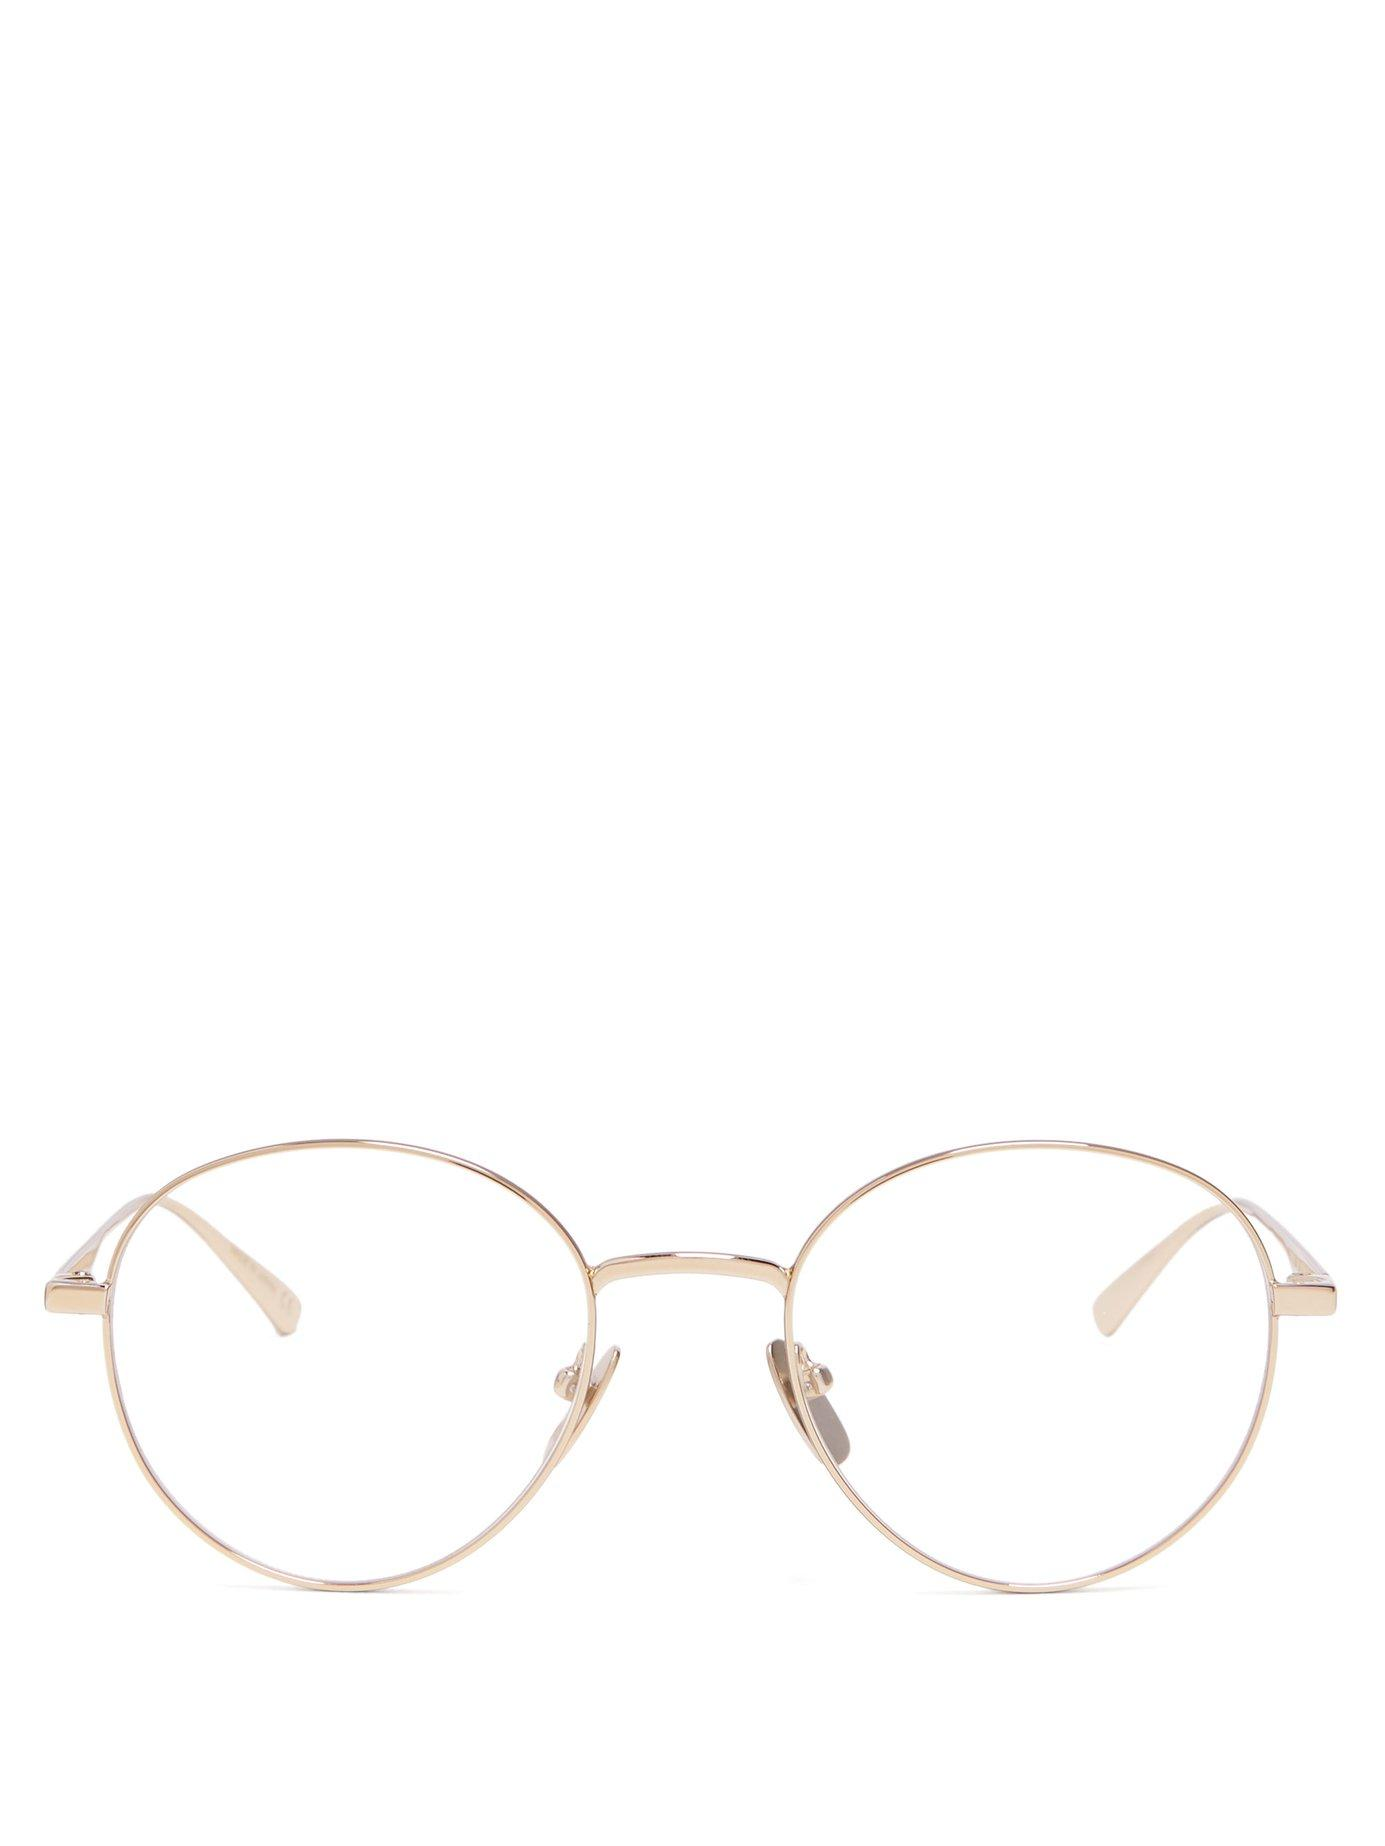 78b1f5949d8 Gucci Round Metal Glasses In Gold